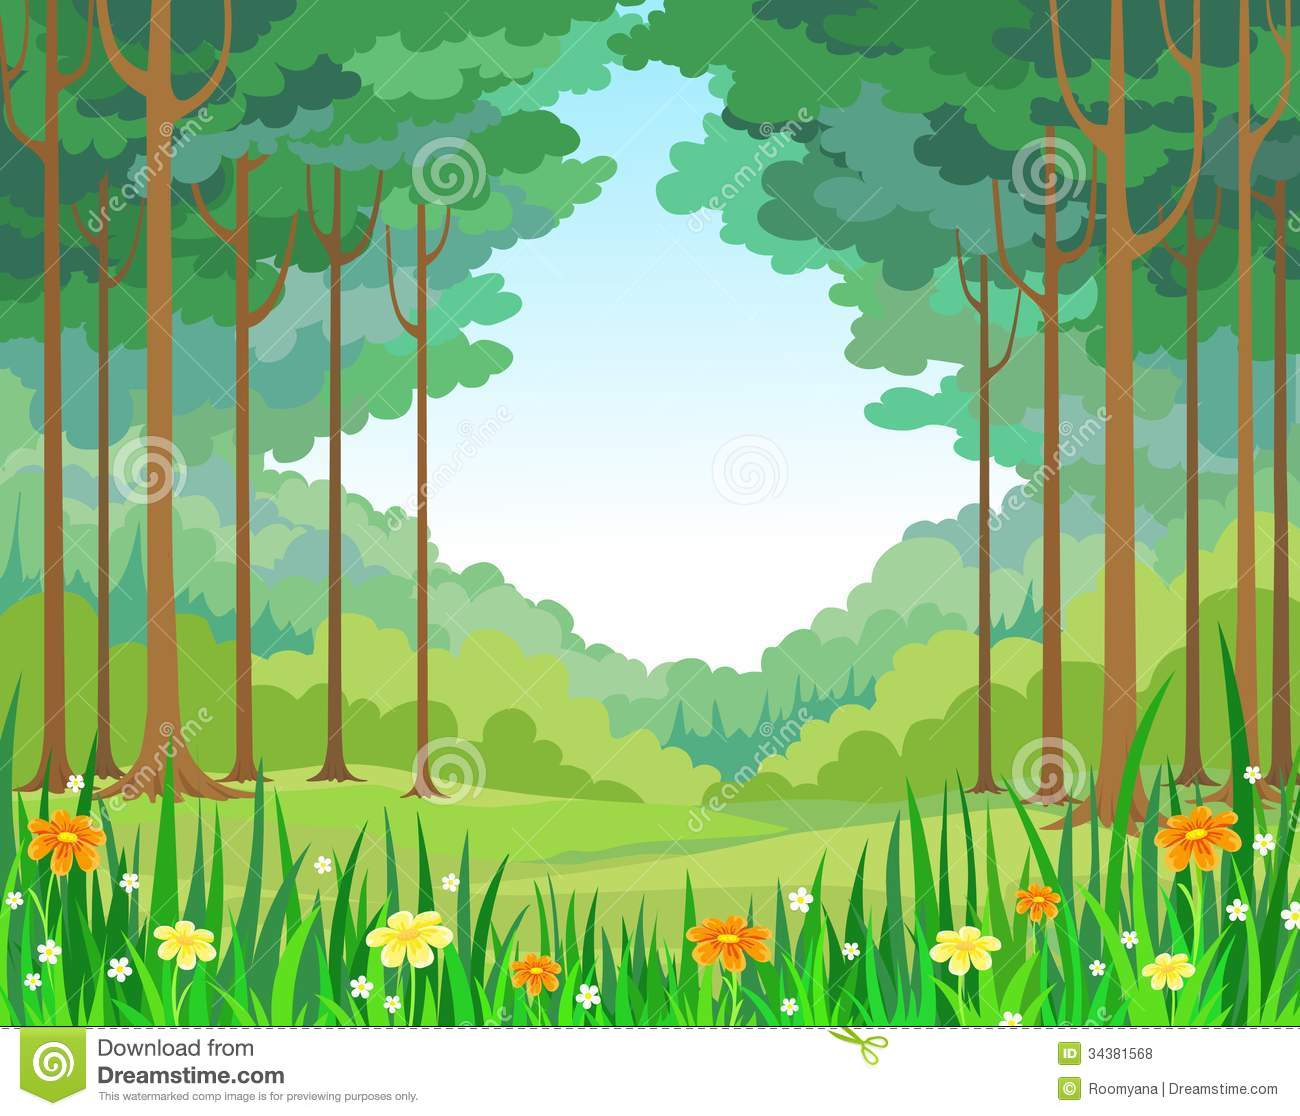 Forest cliparts jpg download Clipart Forest & Forest Clip Art Images - ClipartALL.com jpg download